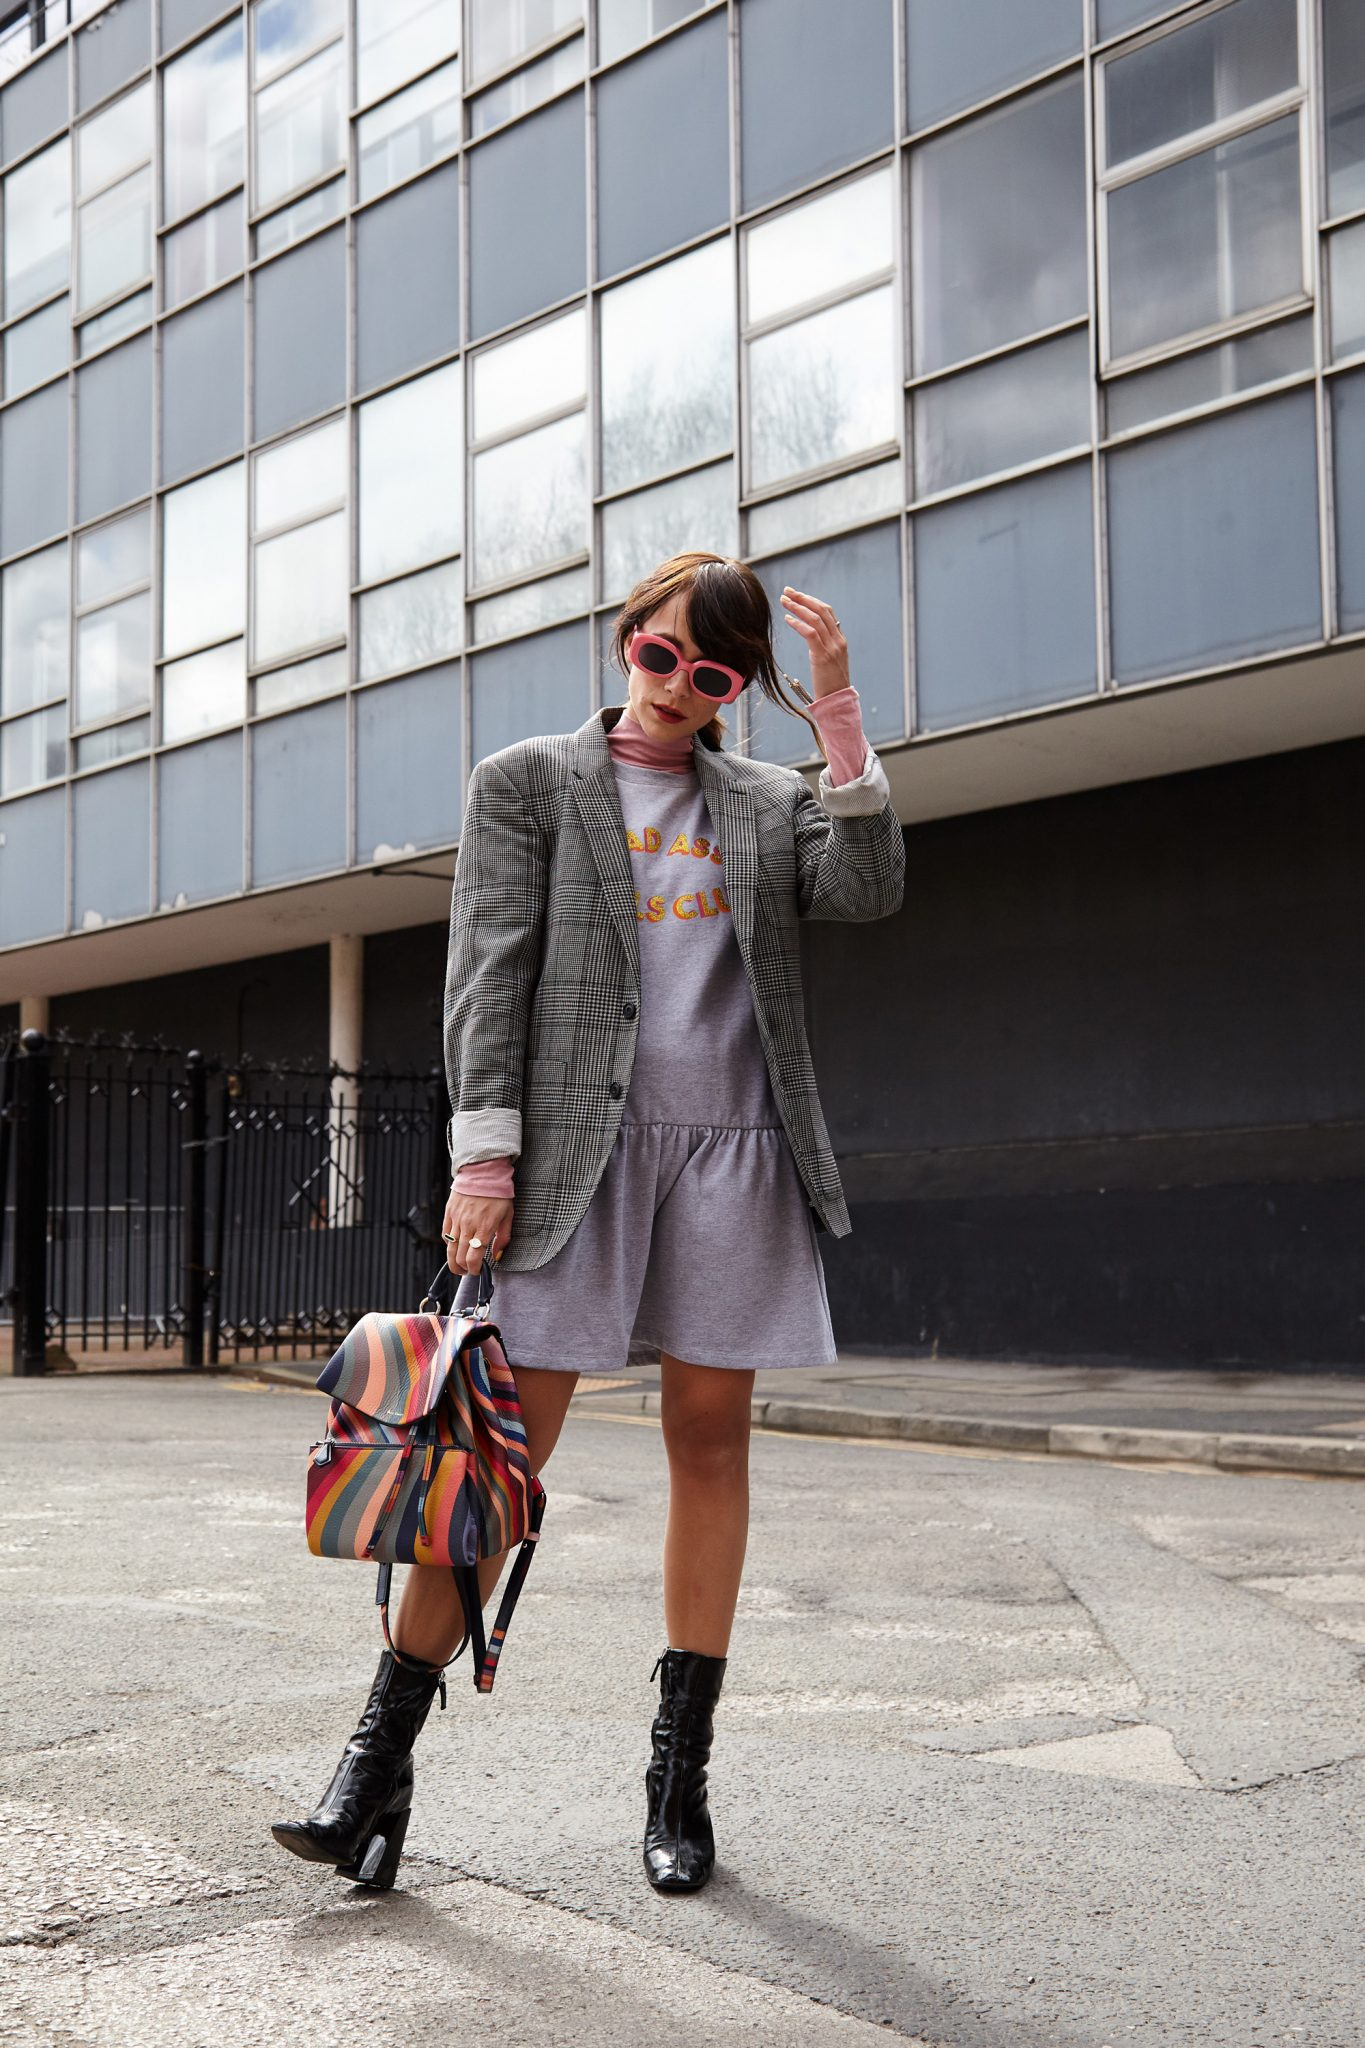 MANCHESTER FASHION BLOGGER MEGAN ELLABY